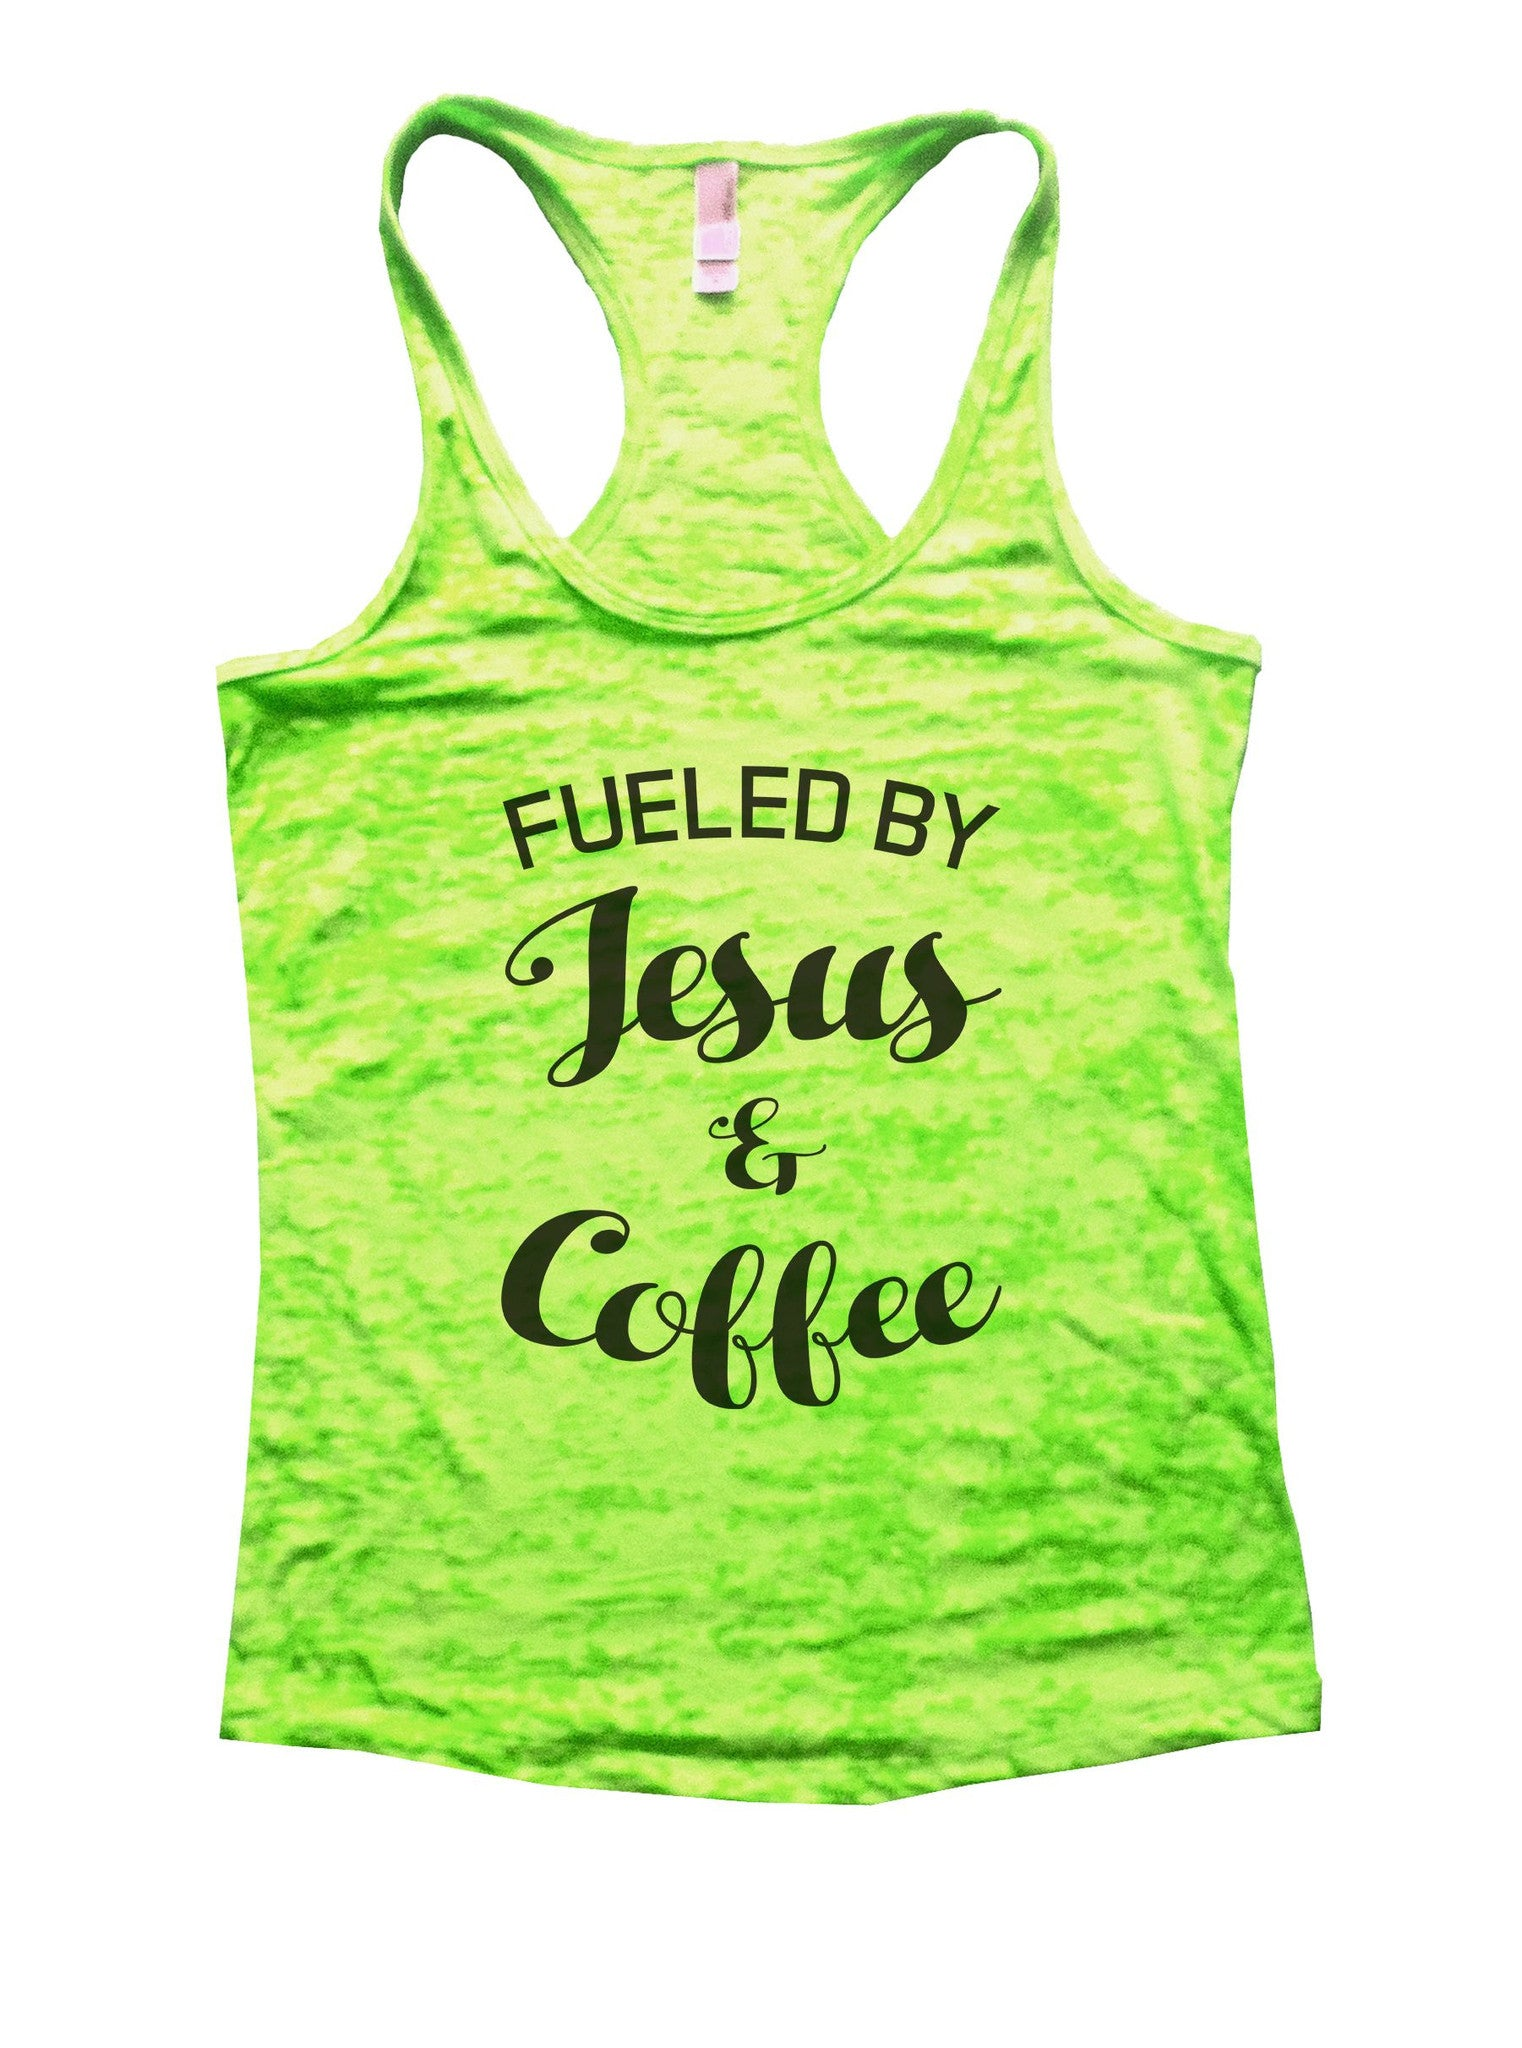 Fueled By Jesus & Coffee Burnout Tank Top By BurnoutTankTops.com - 1128 - Funny Shirts Tank Tops Burnouts and Triblends  - 2